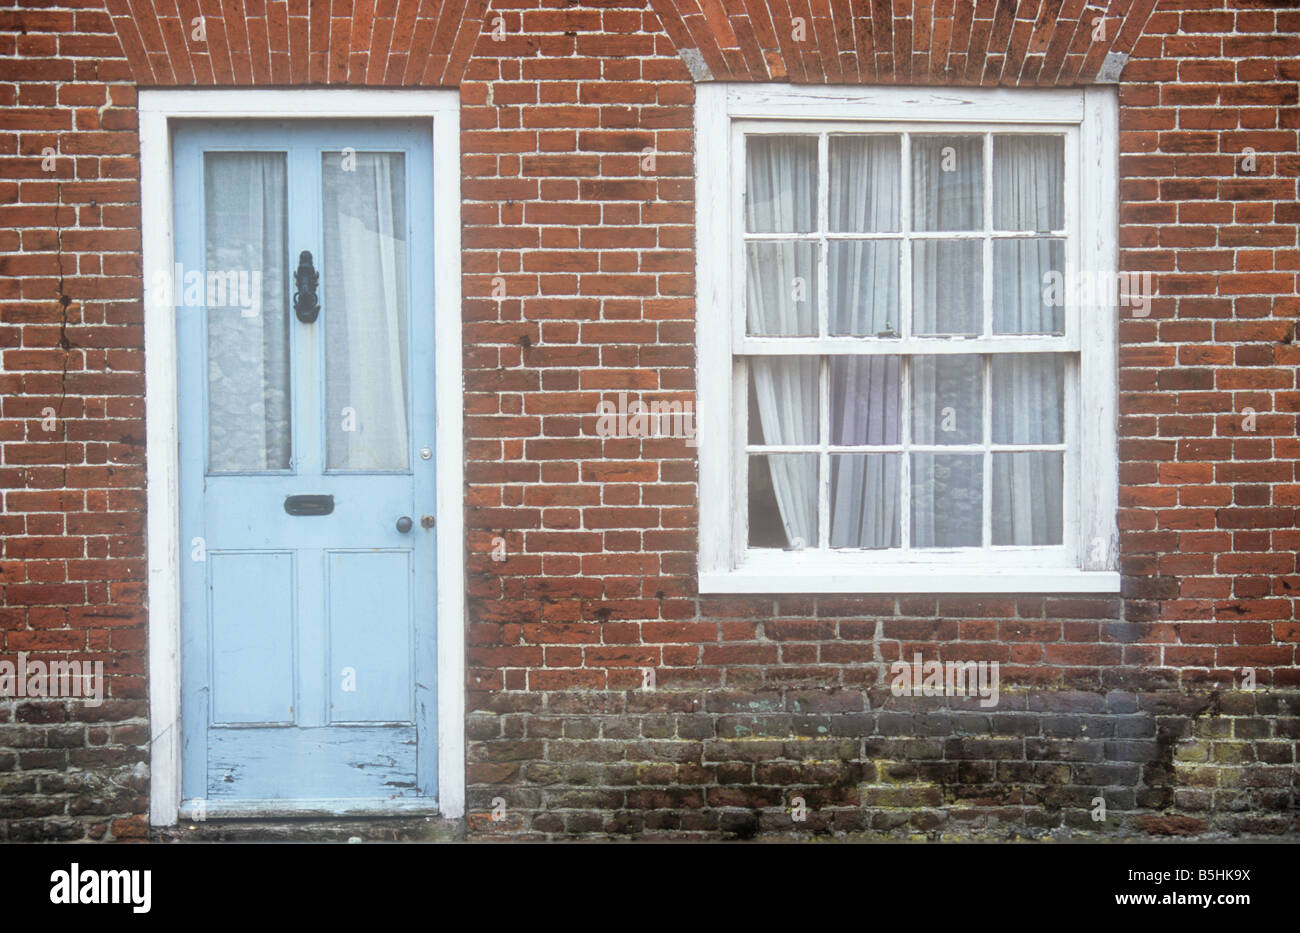 Once stylish pale blue wood and glass door and white sash window set once stylish pale blue wood and glass door and white sash window set in red brick wall of terrace house now needing repair planetlyrics Choice Image